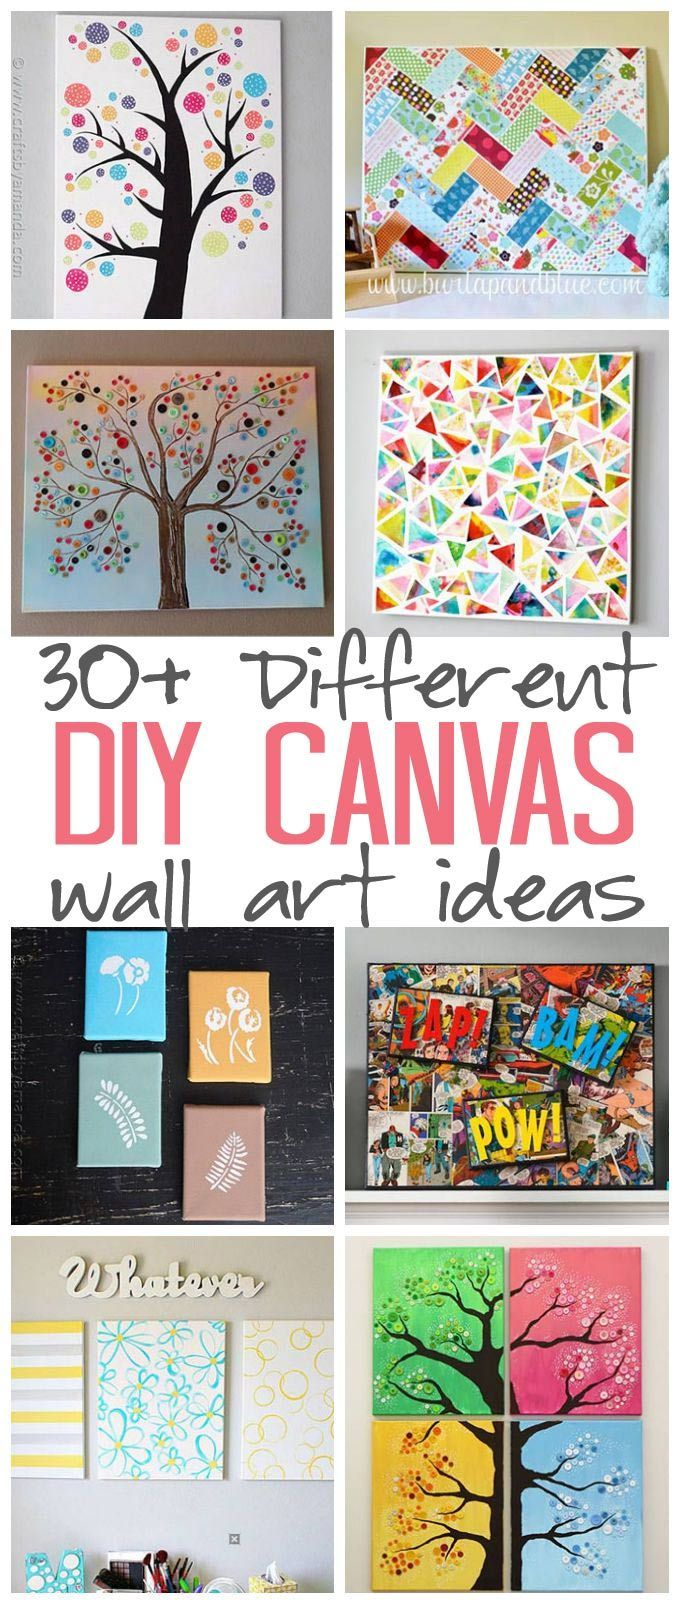 Canvas Craft Ideas For Kids Part - 42: Christmas DIY: DIY Canvas Wall Art DIY Canvas Wall Art Ideas: 30 Canvas  Tutorials For Adults - Great Ideas For Your Home Office Nursery And Craft  Room!